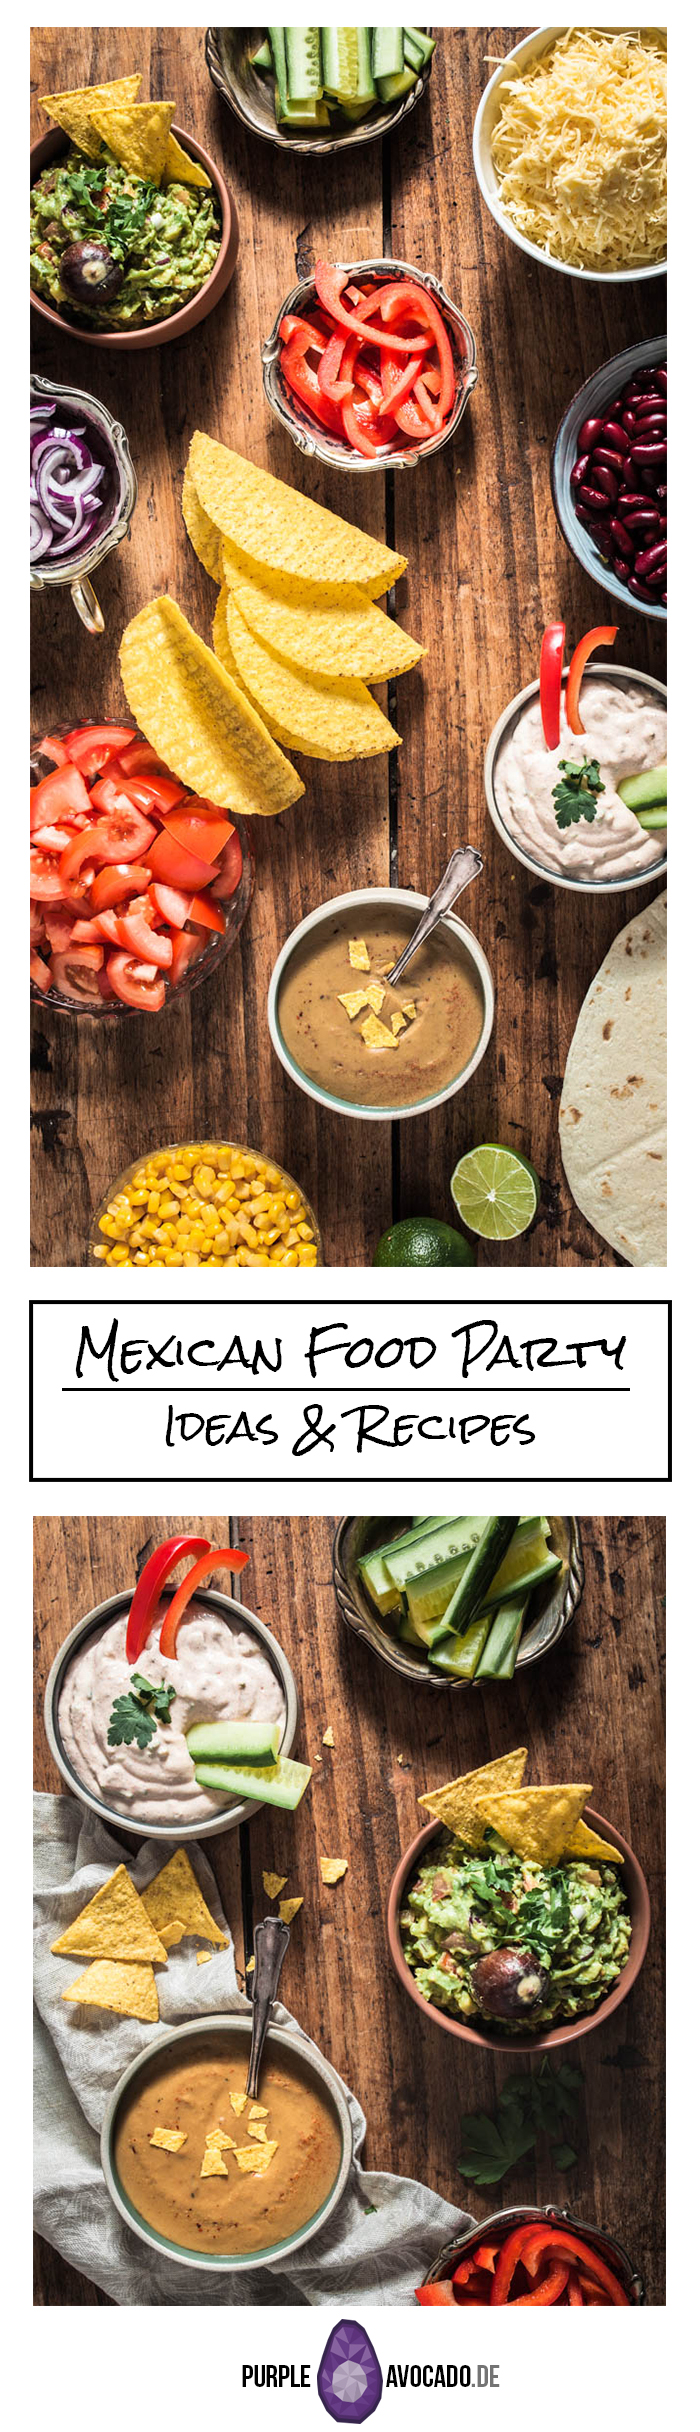 Recipes, ideas and inspiration for plant-based, vegan Mexican Party food with tortillas, tacos, veggies, pulled BBQ jackfruit and marinated cauliflower wings